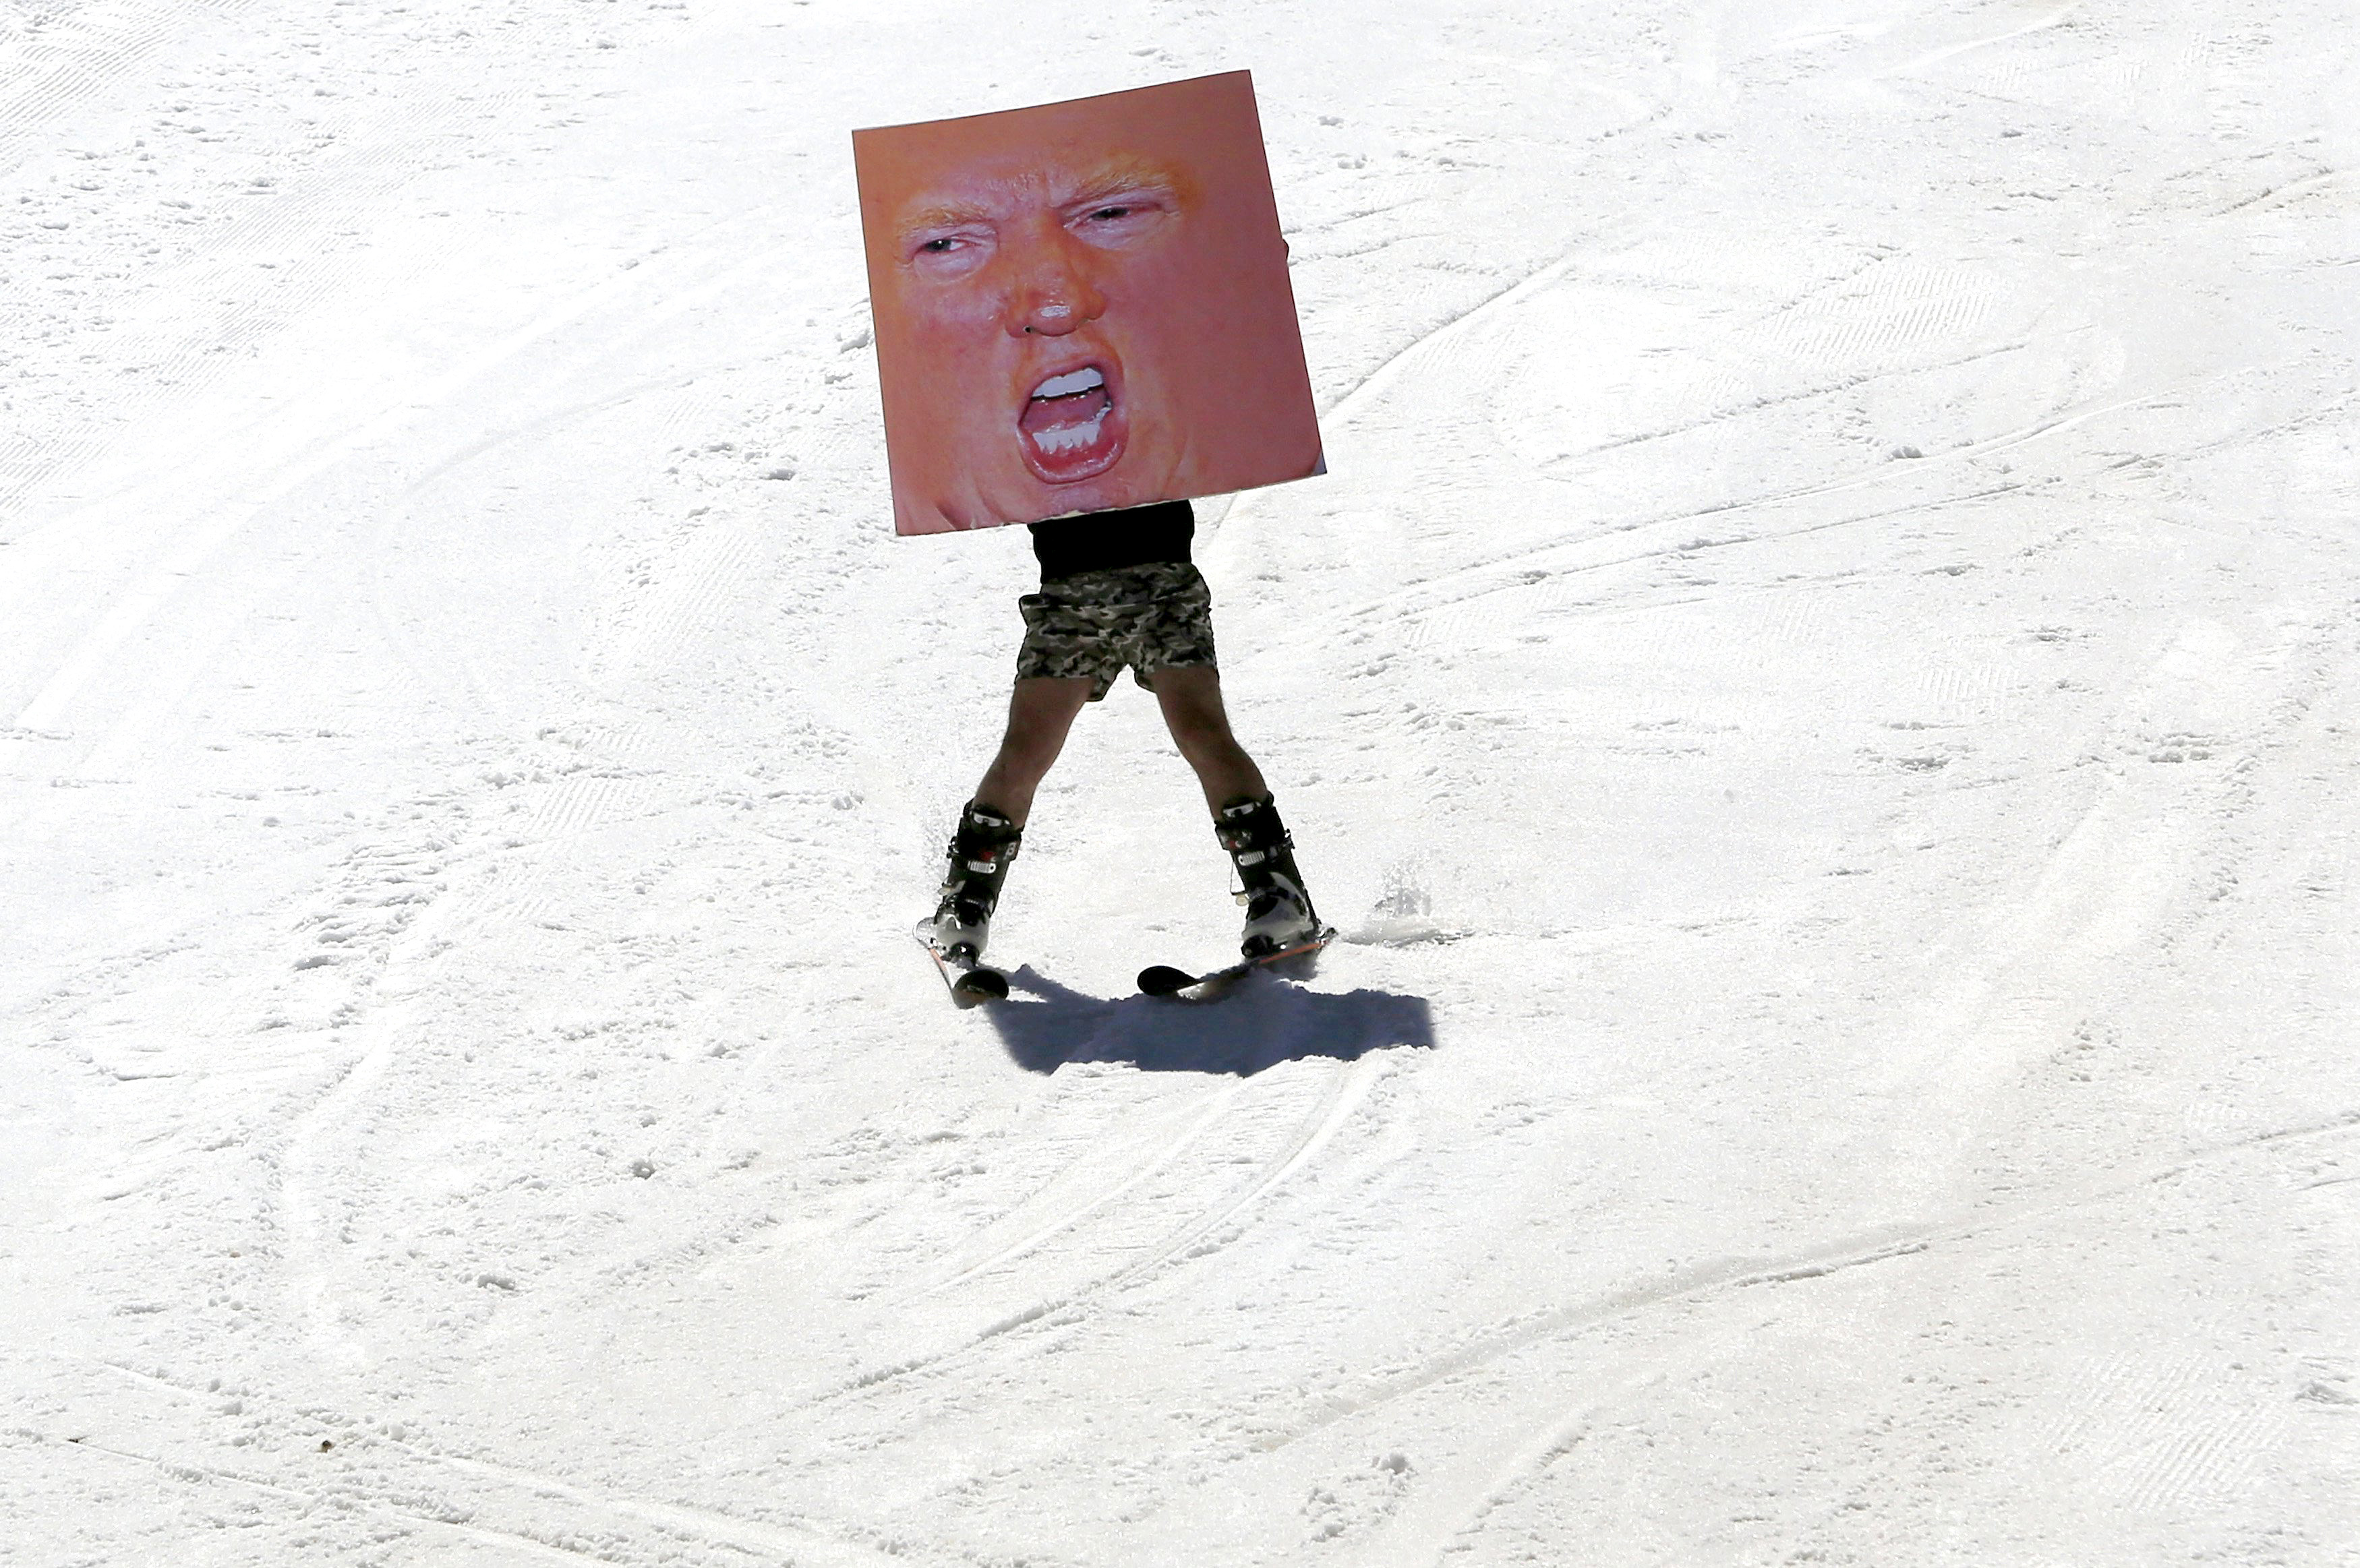 A man holds a poster depicting Donald Trump while participating in Red Bull Jump & Freeze Lebanon at a ski resort in mount Lebanon on Feb. 28.